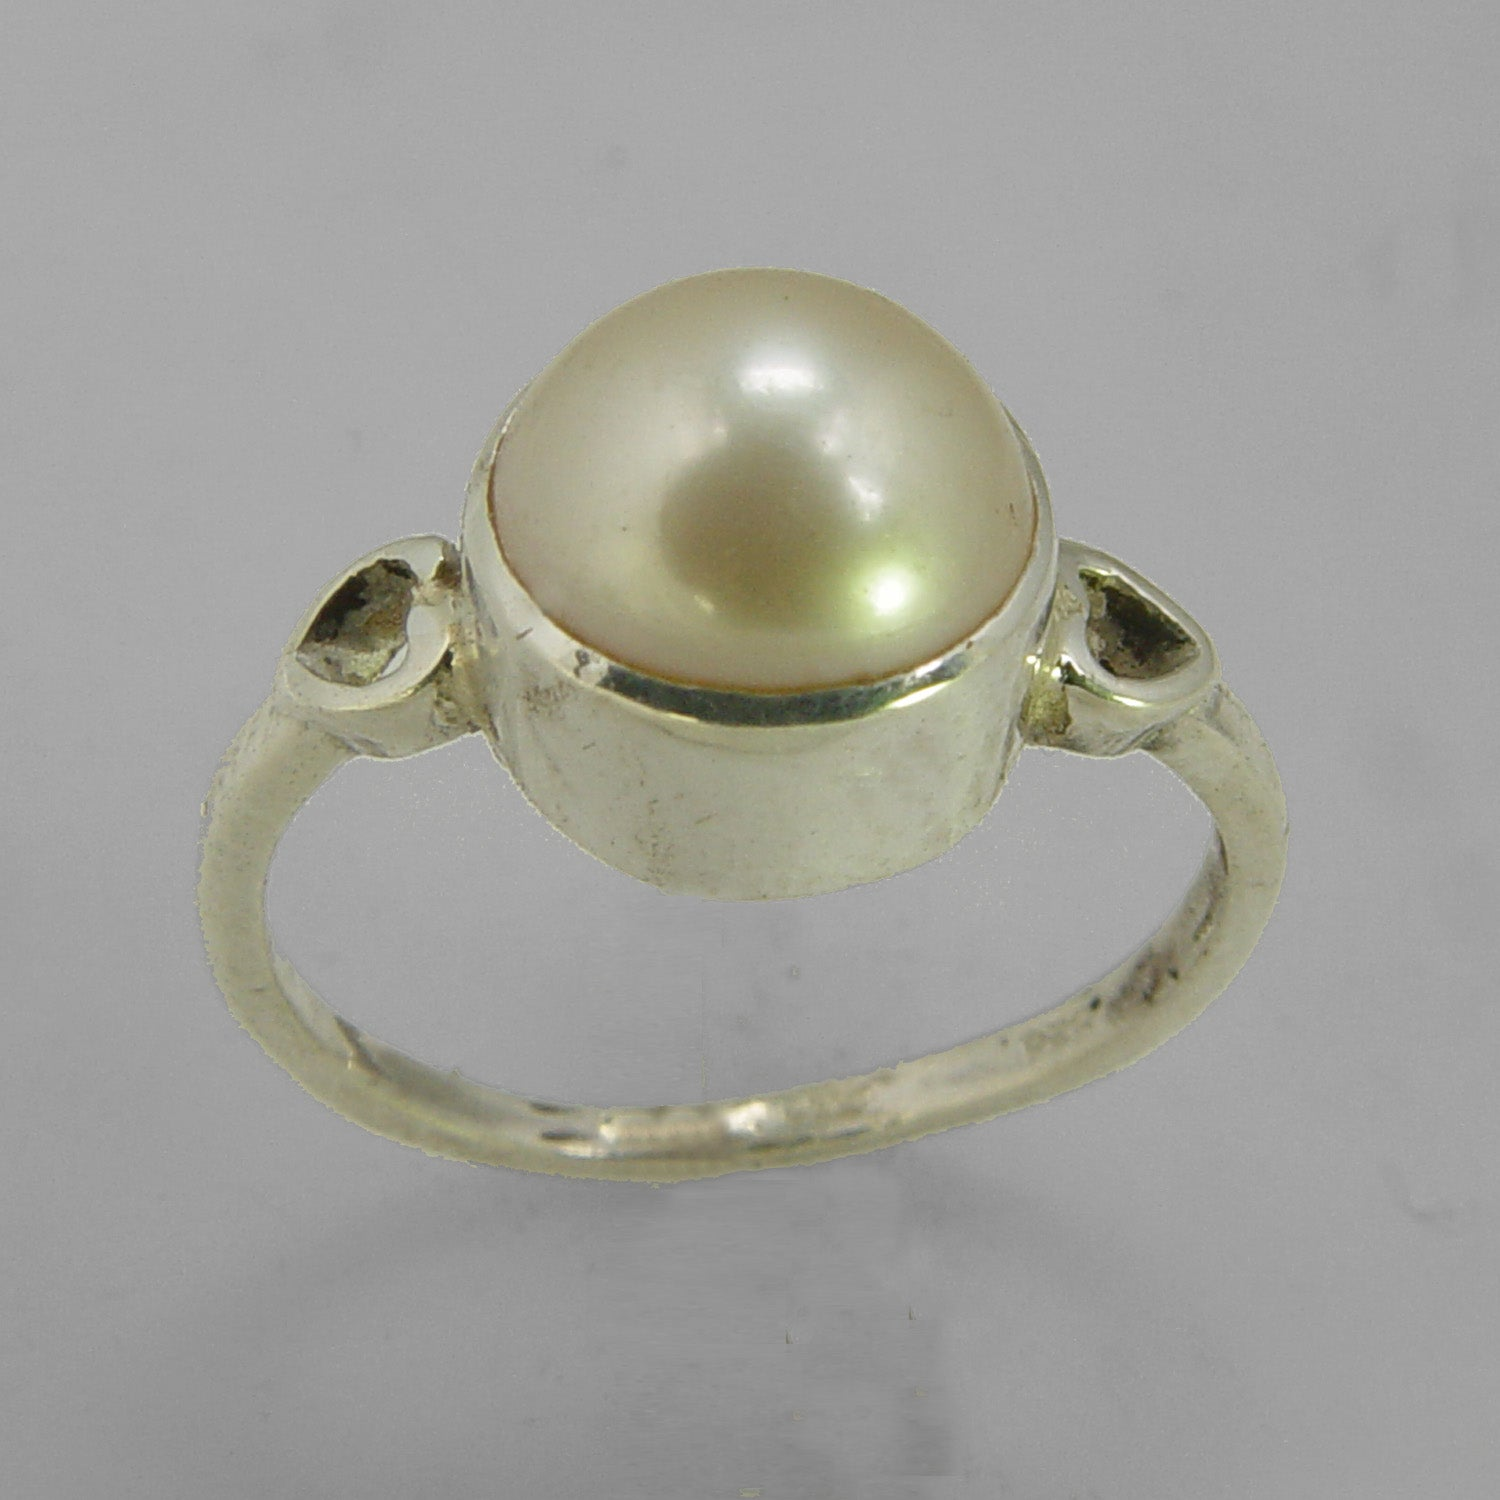 Pearl 5.2 ct Freshwater Pearl Heart Shank Set Sterling Silver Ring, Size 7